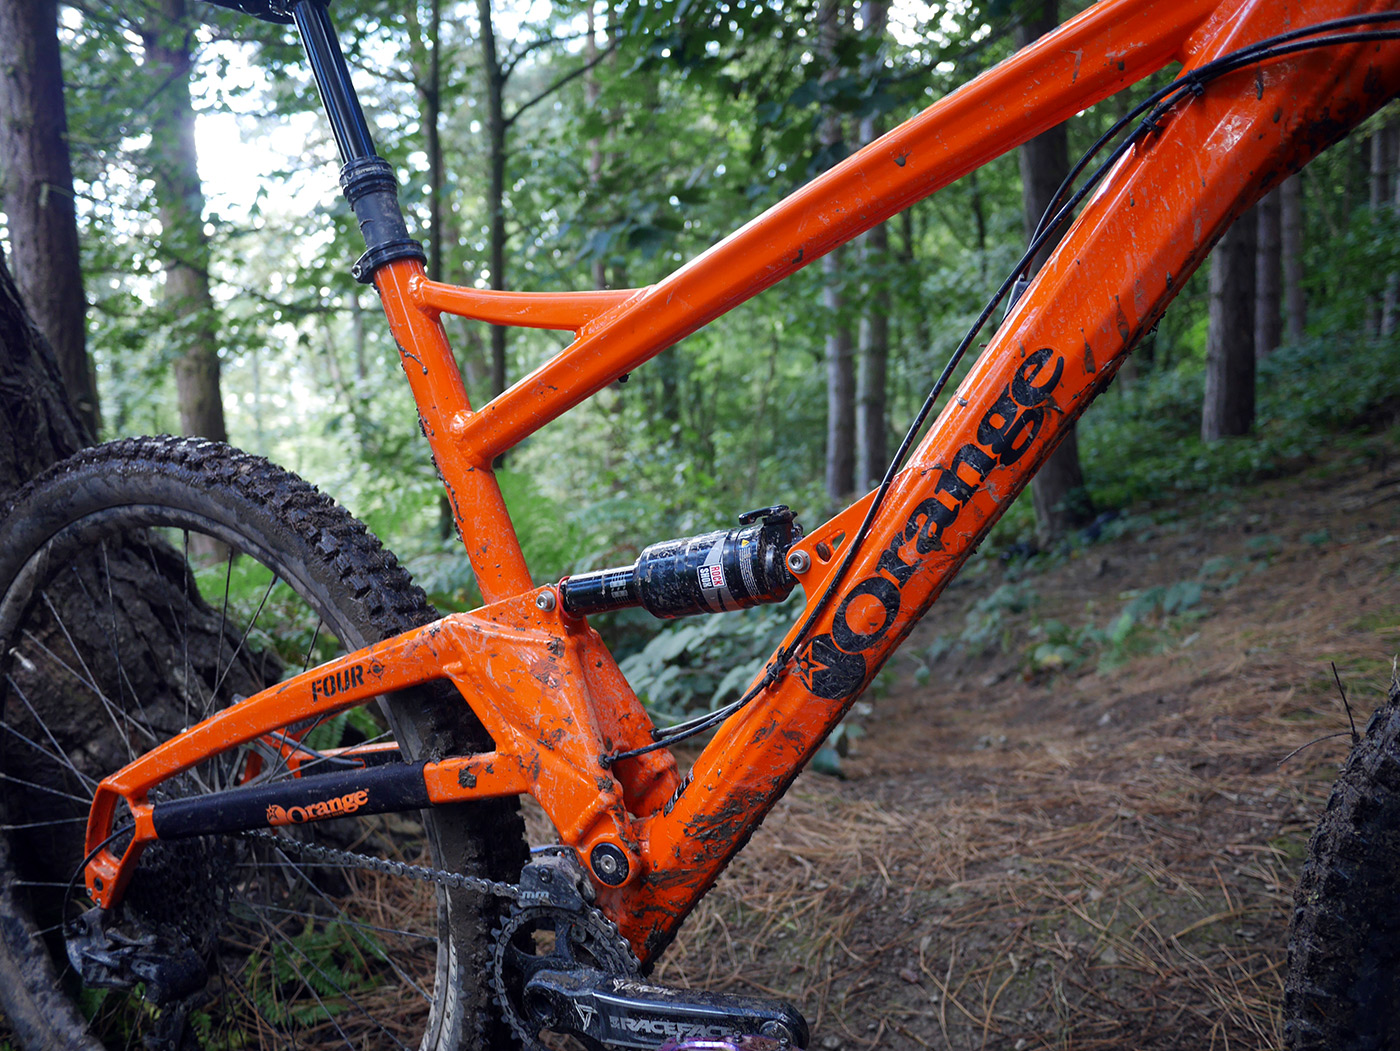 Orange Four RS XL in Orange